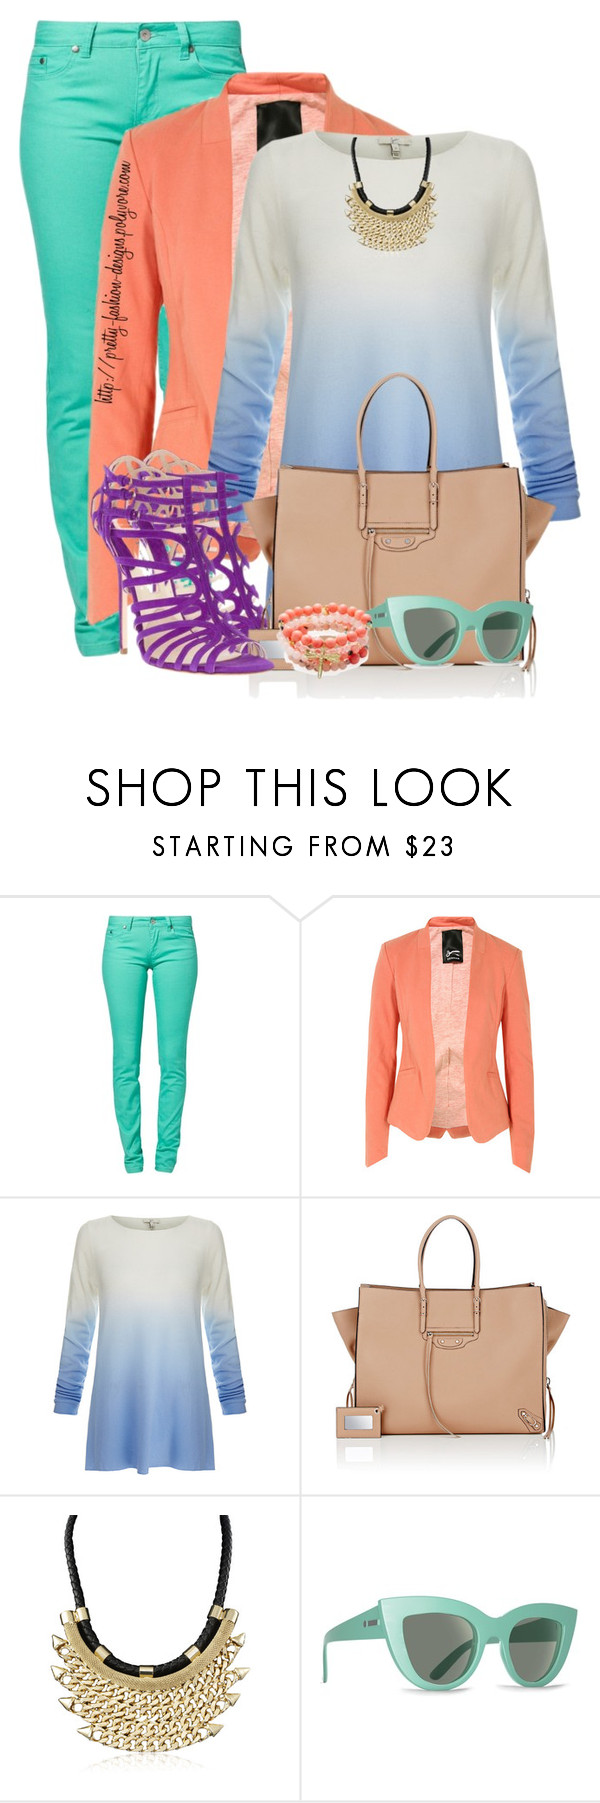 """~  Pastel Colors Block  ~"" by pretty-fashion-designs ❤ liked on Polyvore featuring Element, Denham, Joie, Brian Atwood, Balenciaga, Billabong and Good Charma"